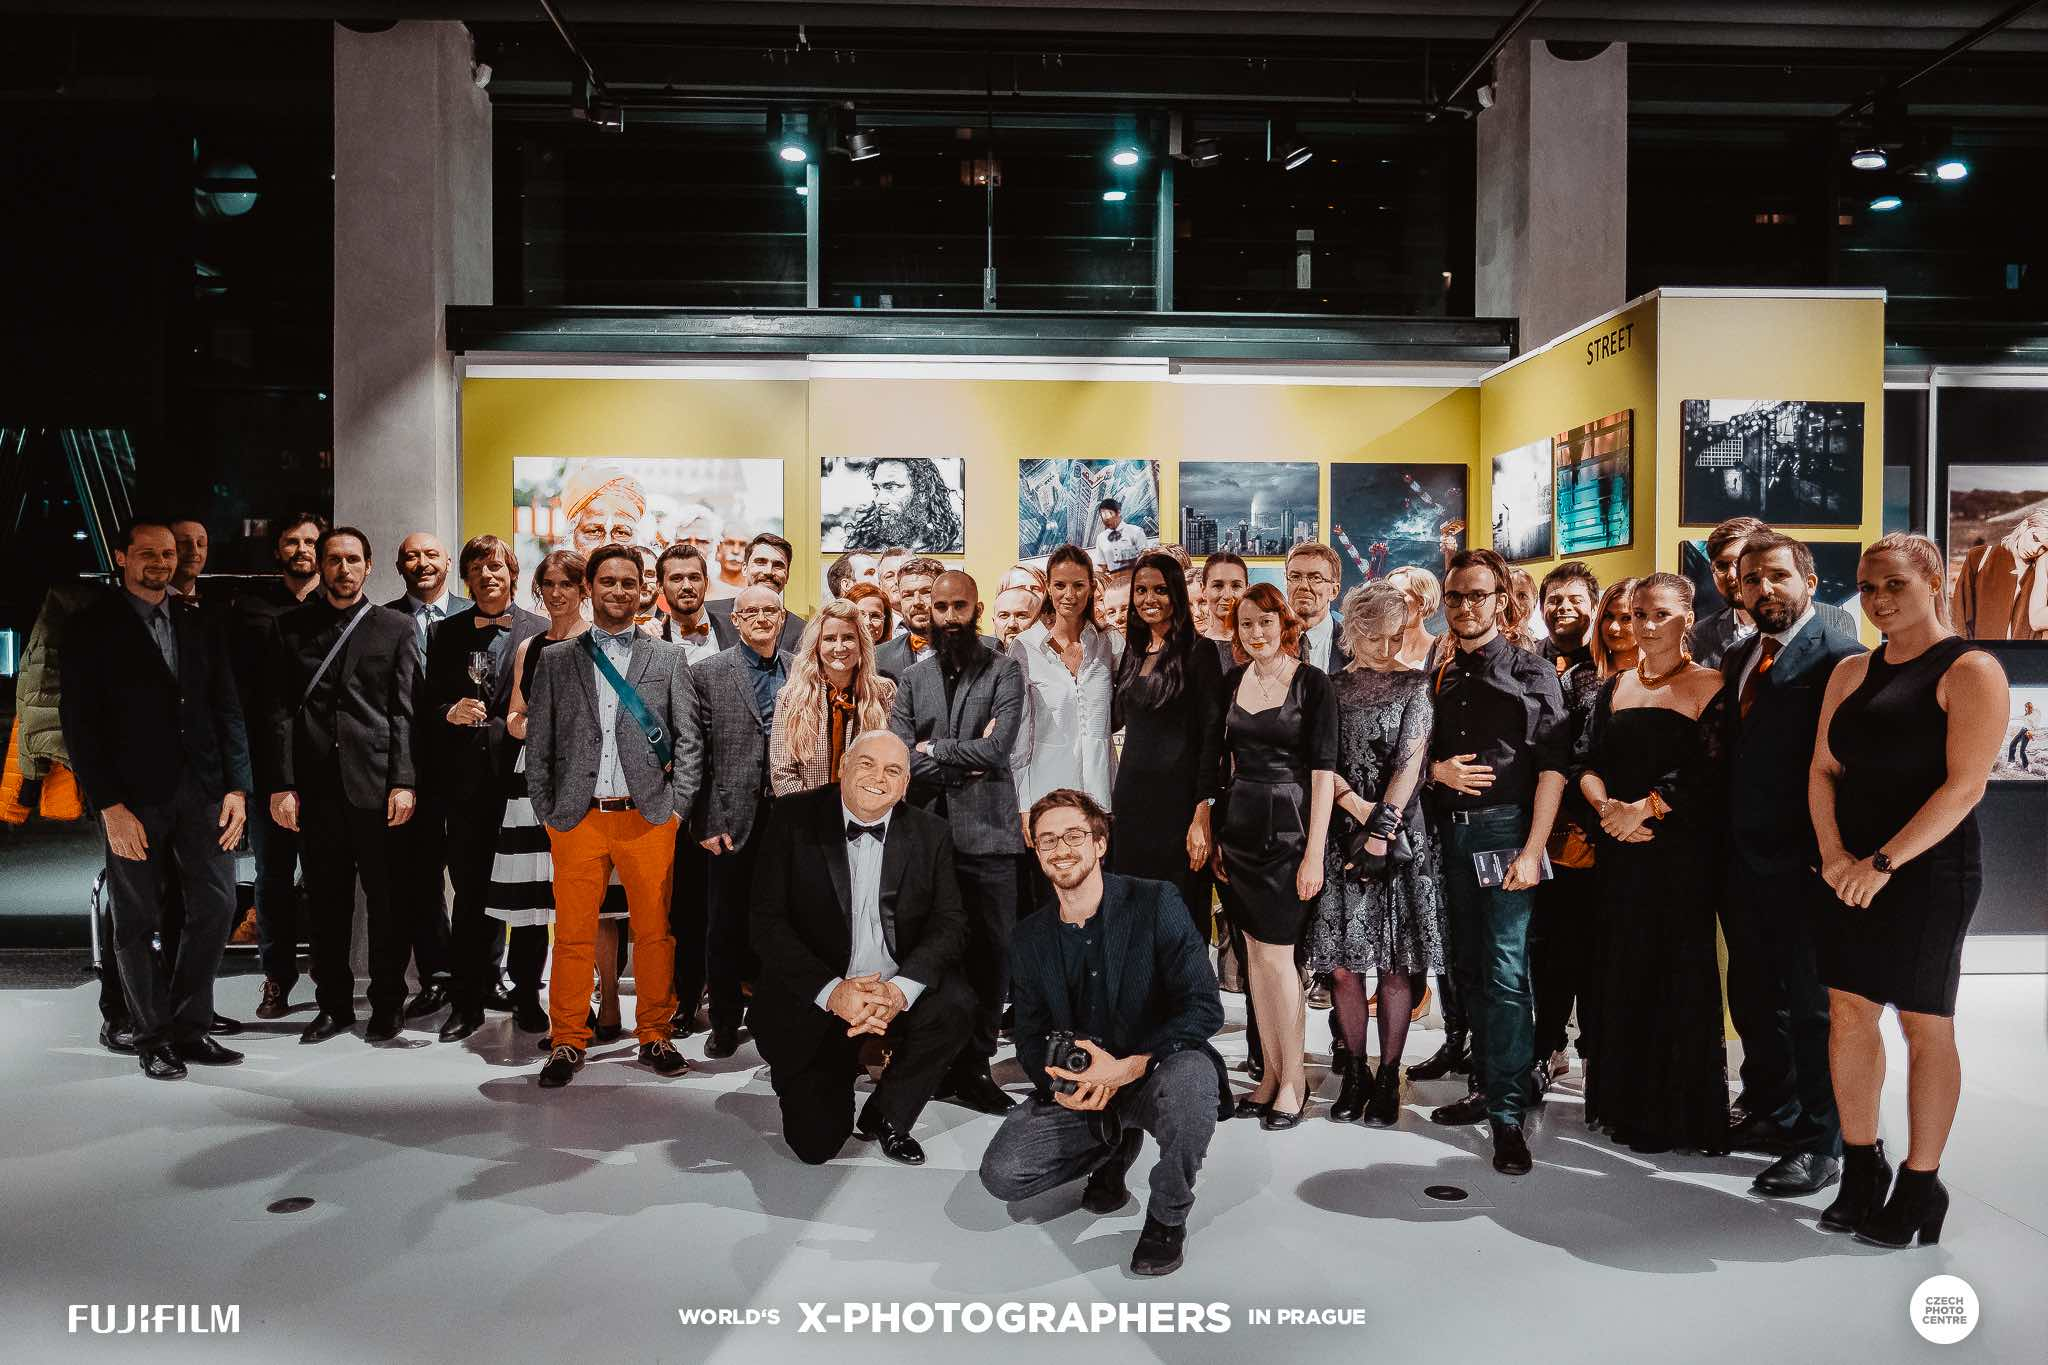 FUJIFILM World X-Photographers czech republic prague photography exhibition opening